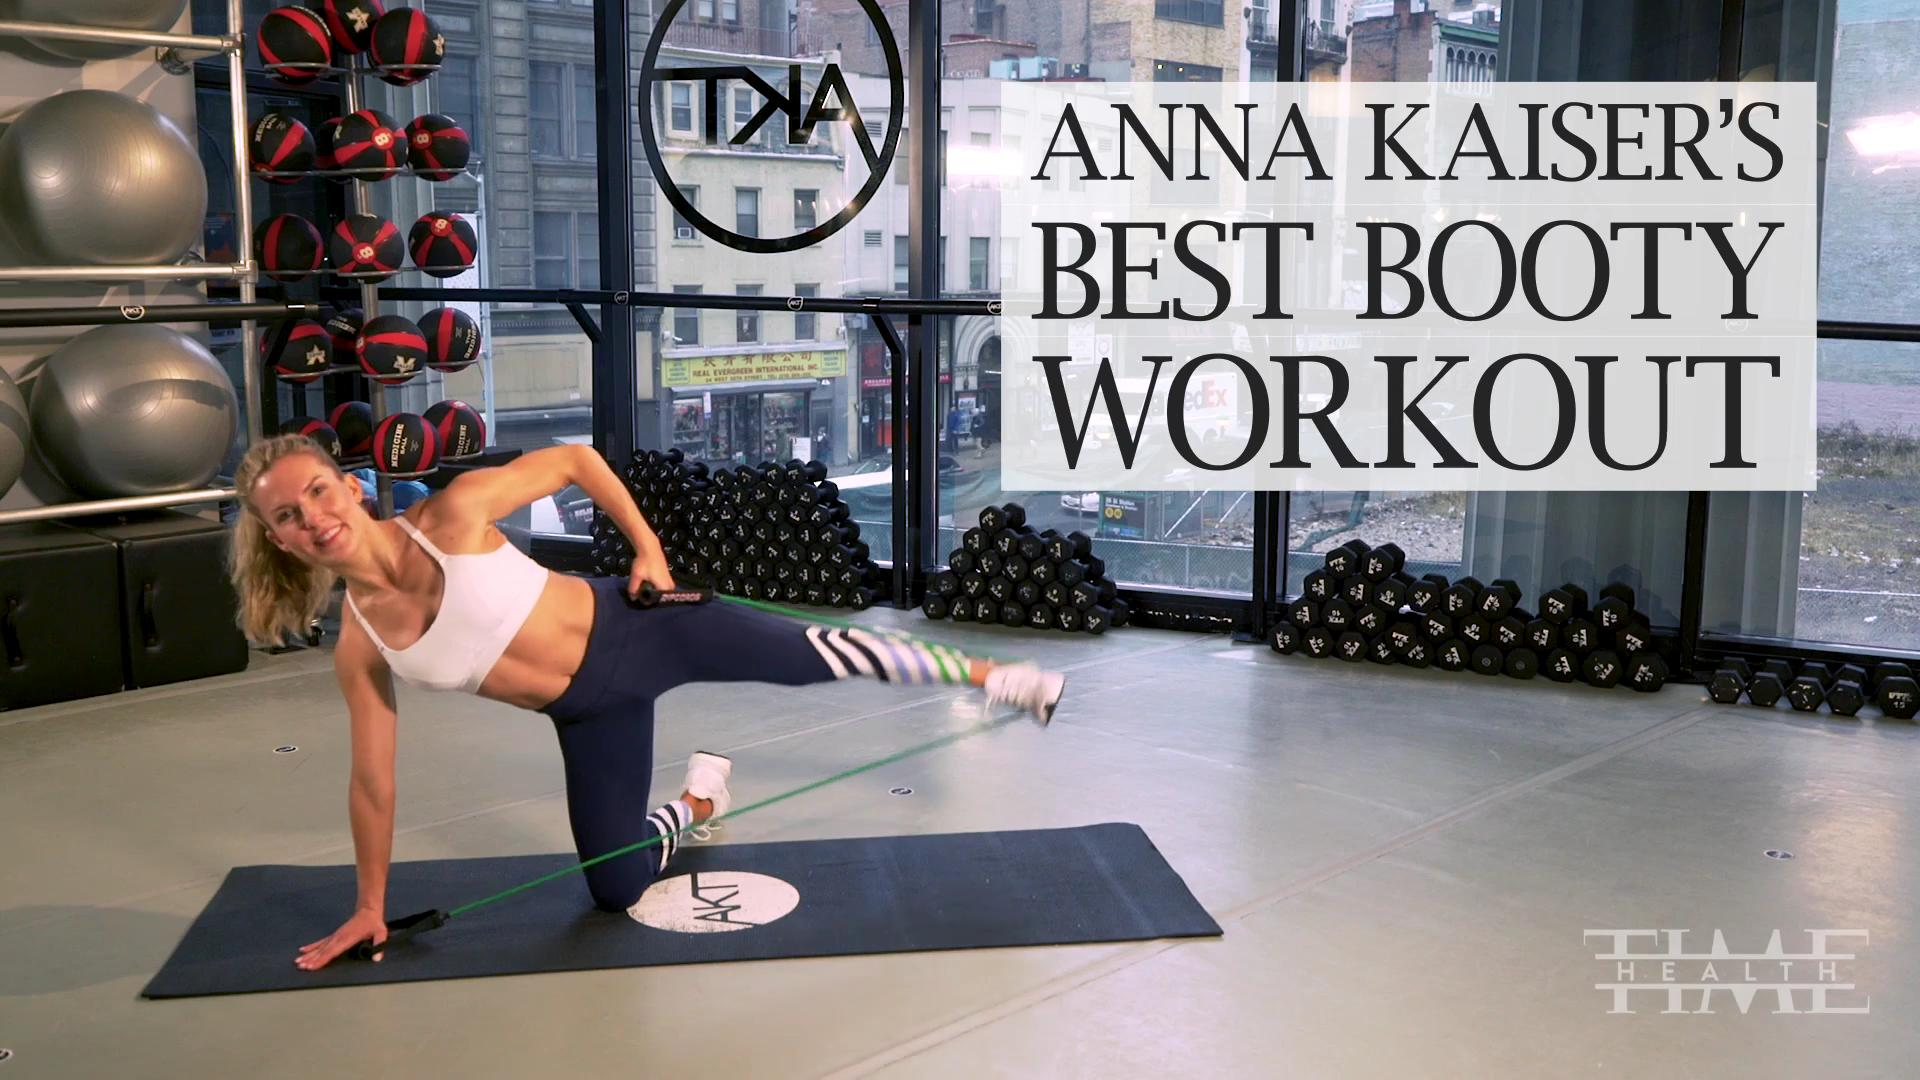 Anna Kaiser's Best Booty Workout